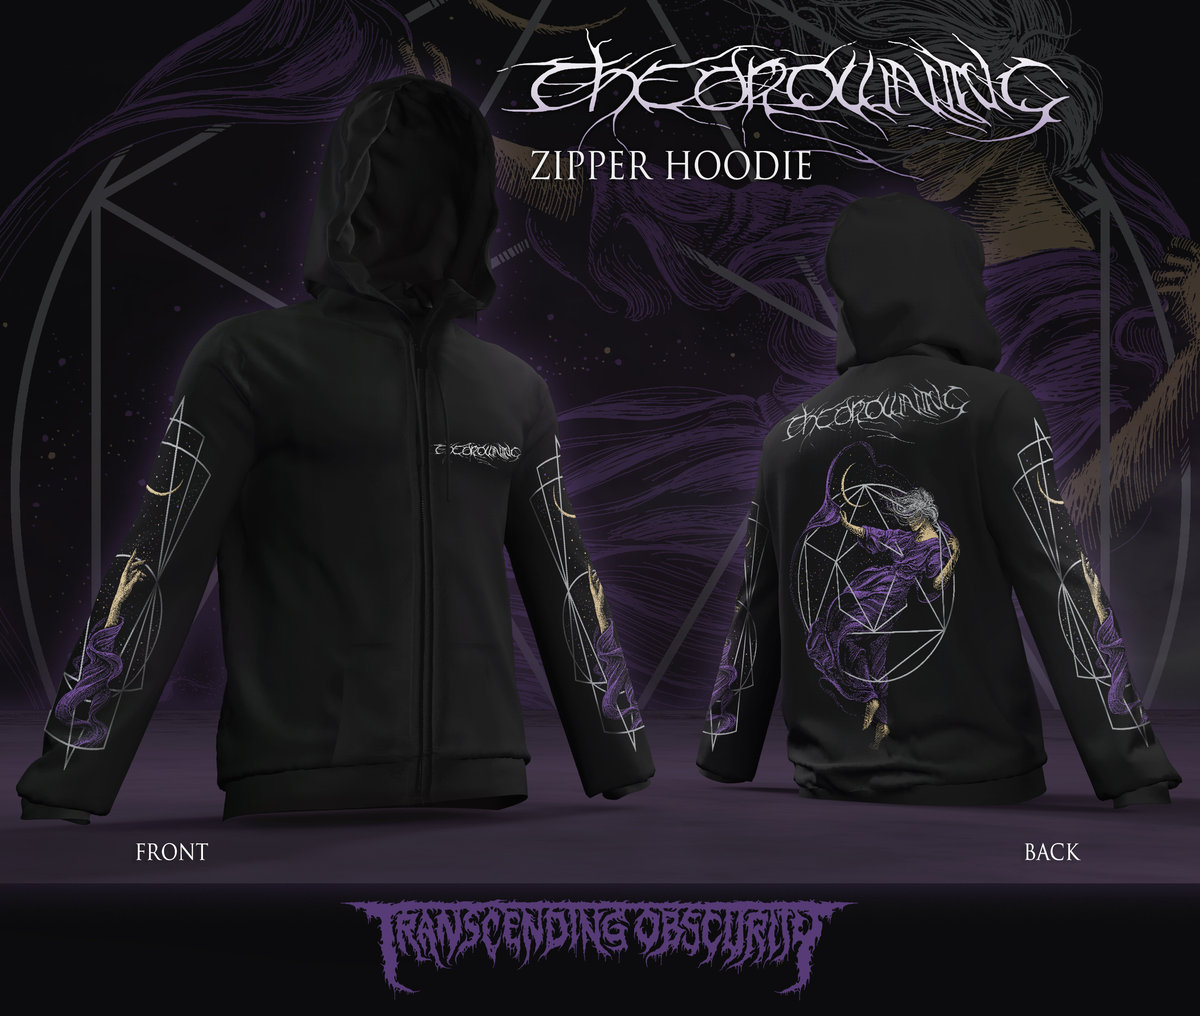 THE DROWNING Zipped Hoodie (Limited to 30 nos.)